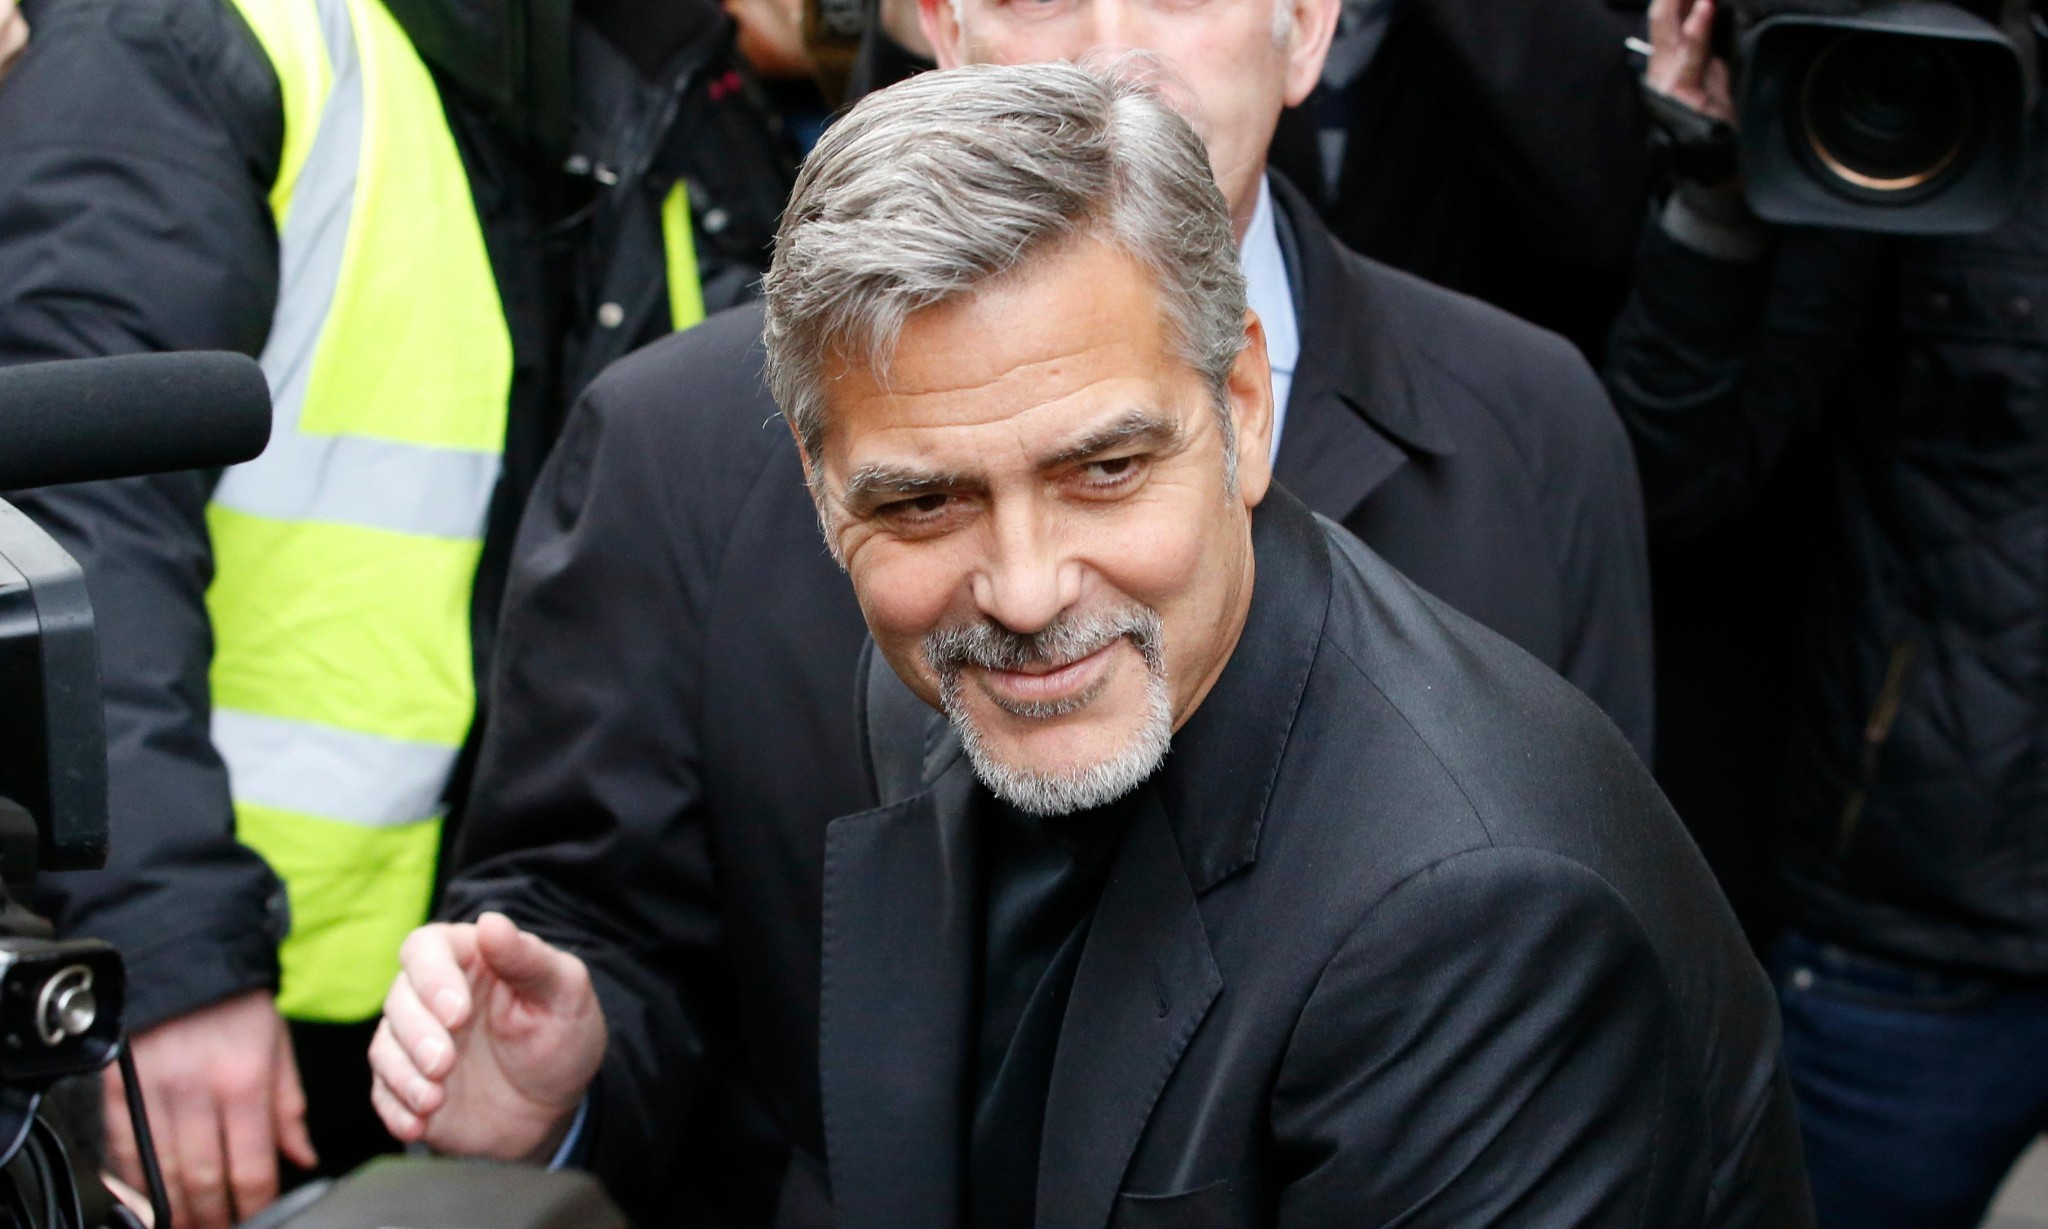 George Clooney says the Oscars are moving backwards on diversity